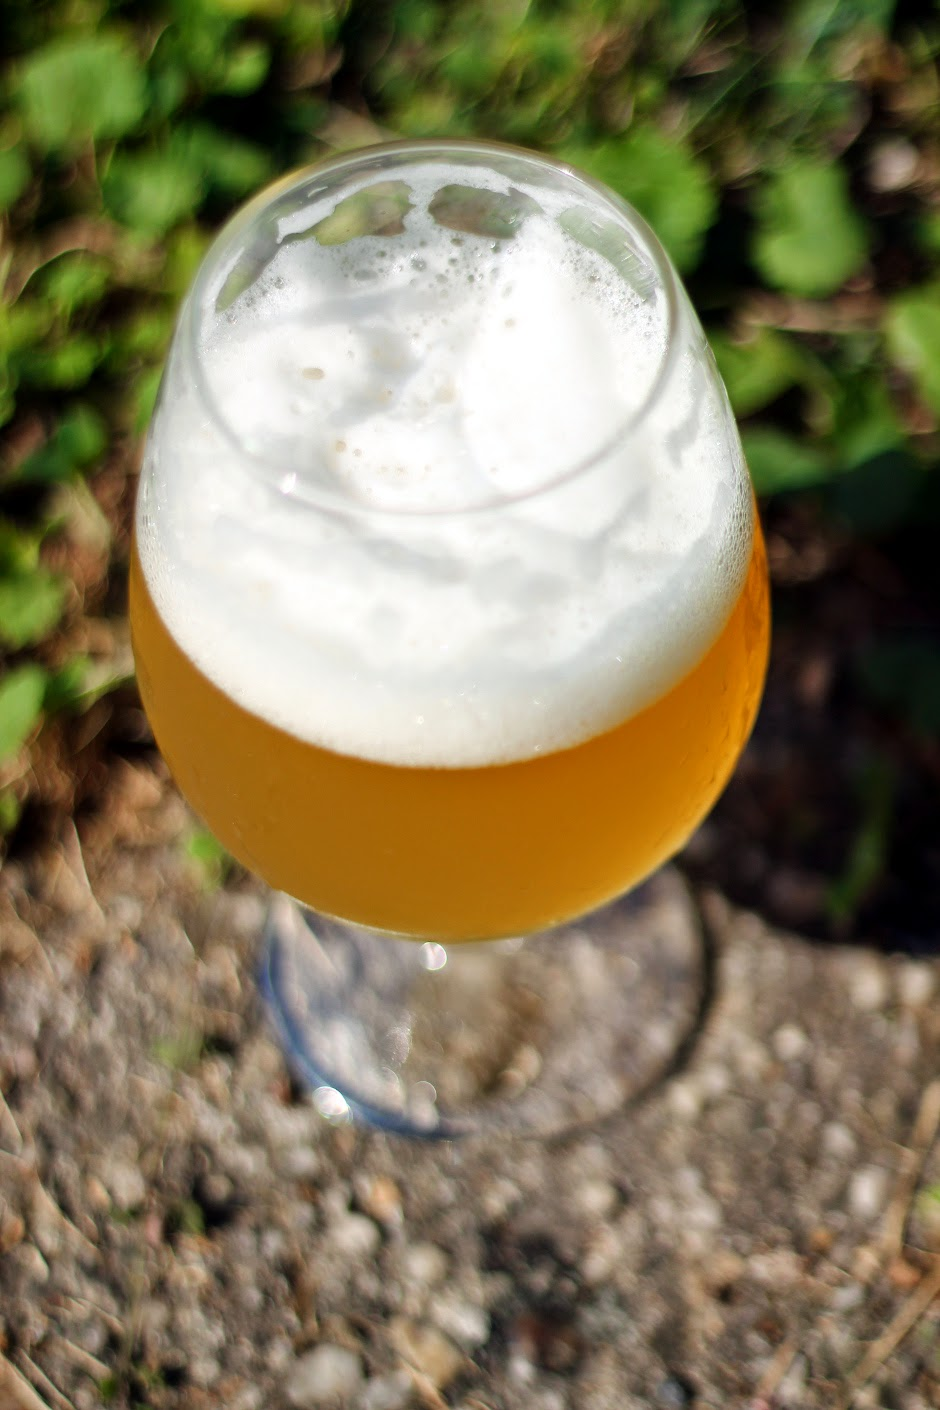 A glass of saison on a sunny afternoon, pretty sight!